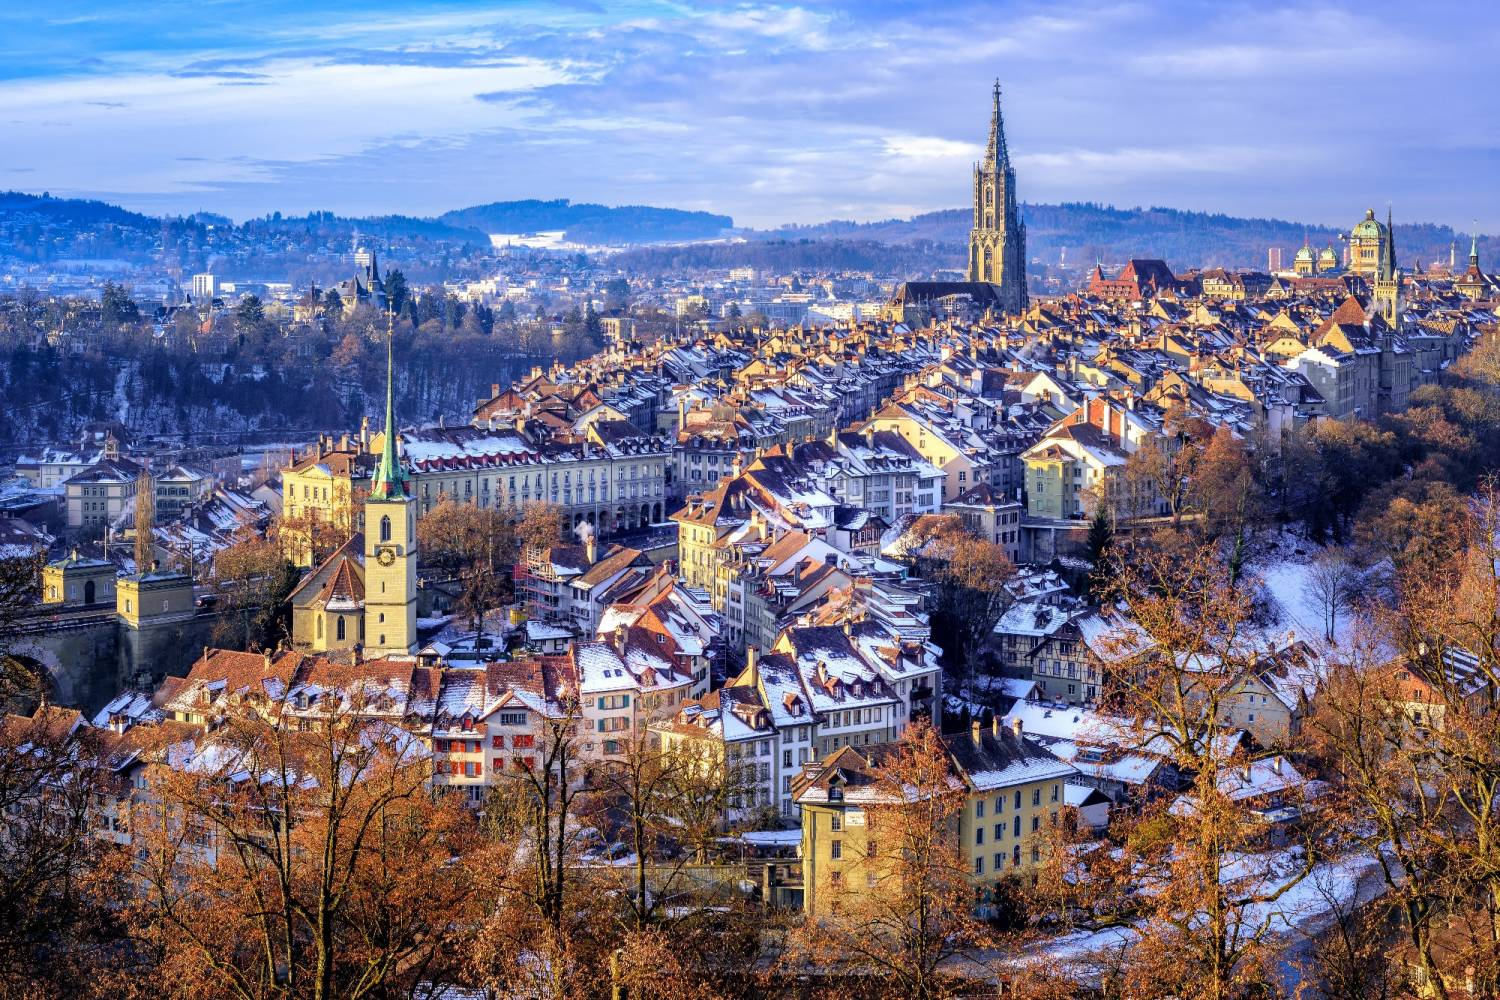 Start spreading the news! Take a Chef now offers the ultimate dining experience in Bern. Book a Private Chef now,  header